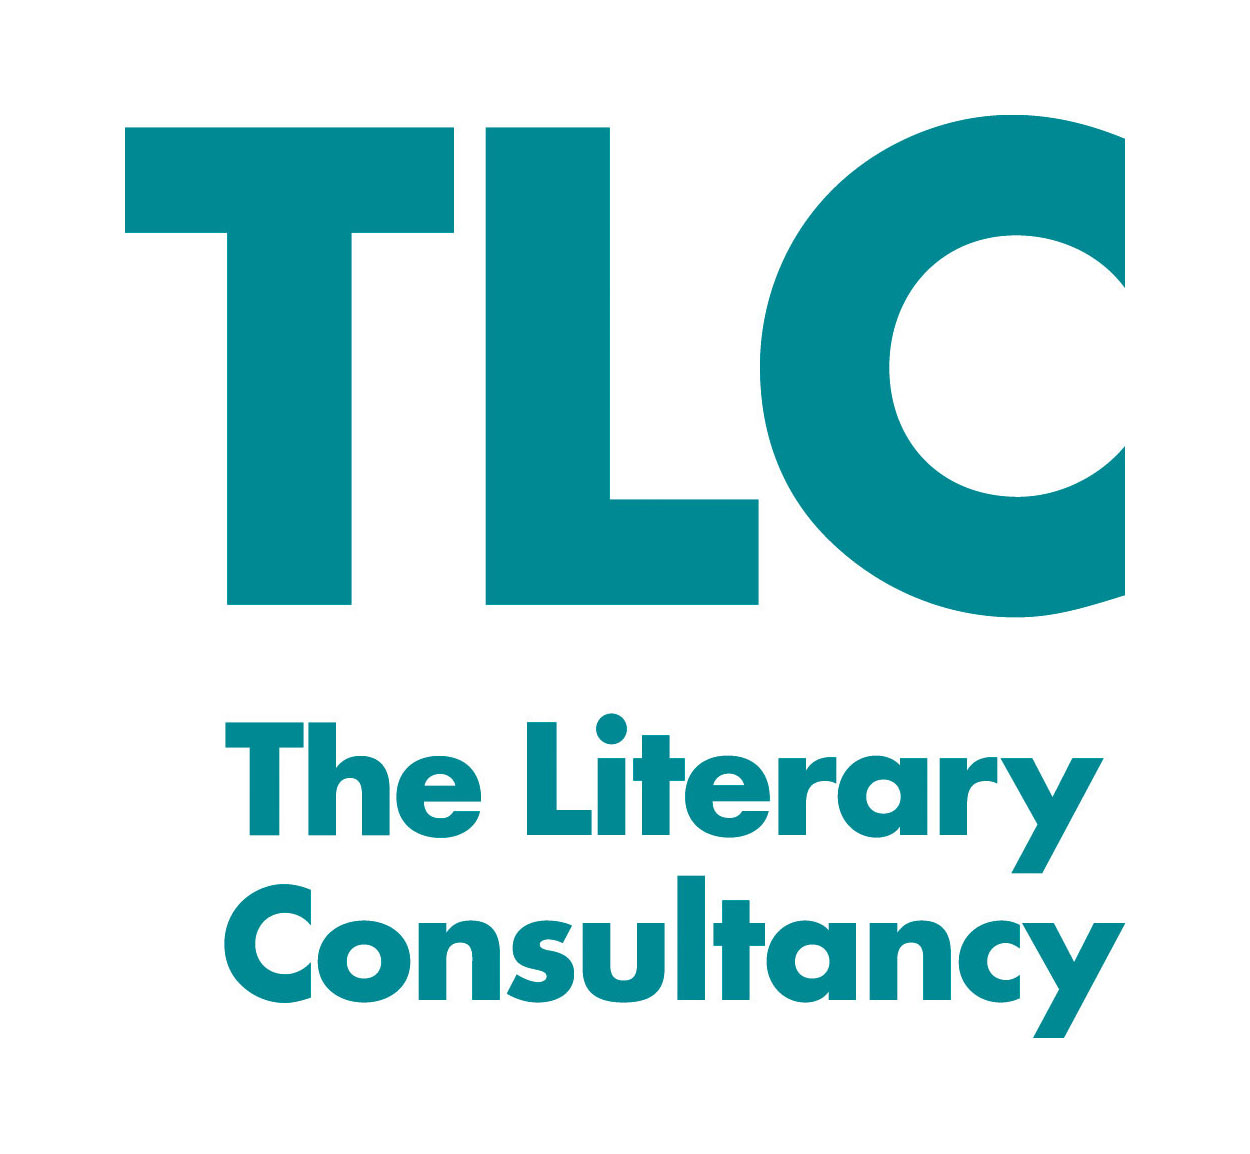 Bookswarm advises The Literary Consultancy on website strategy